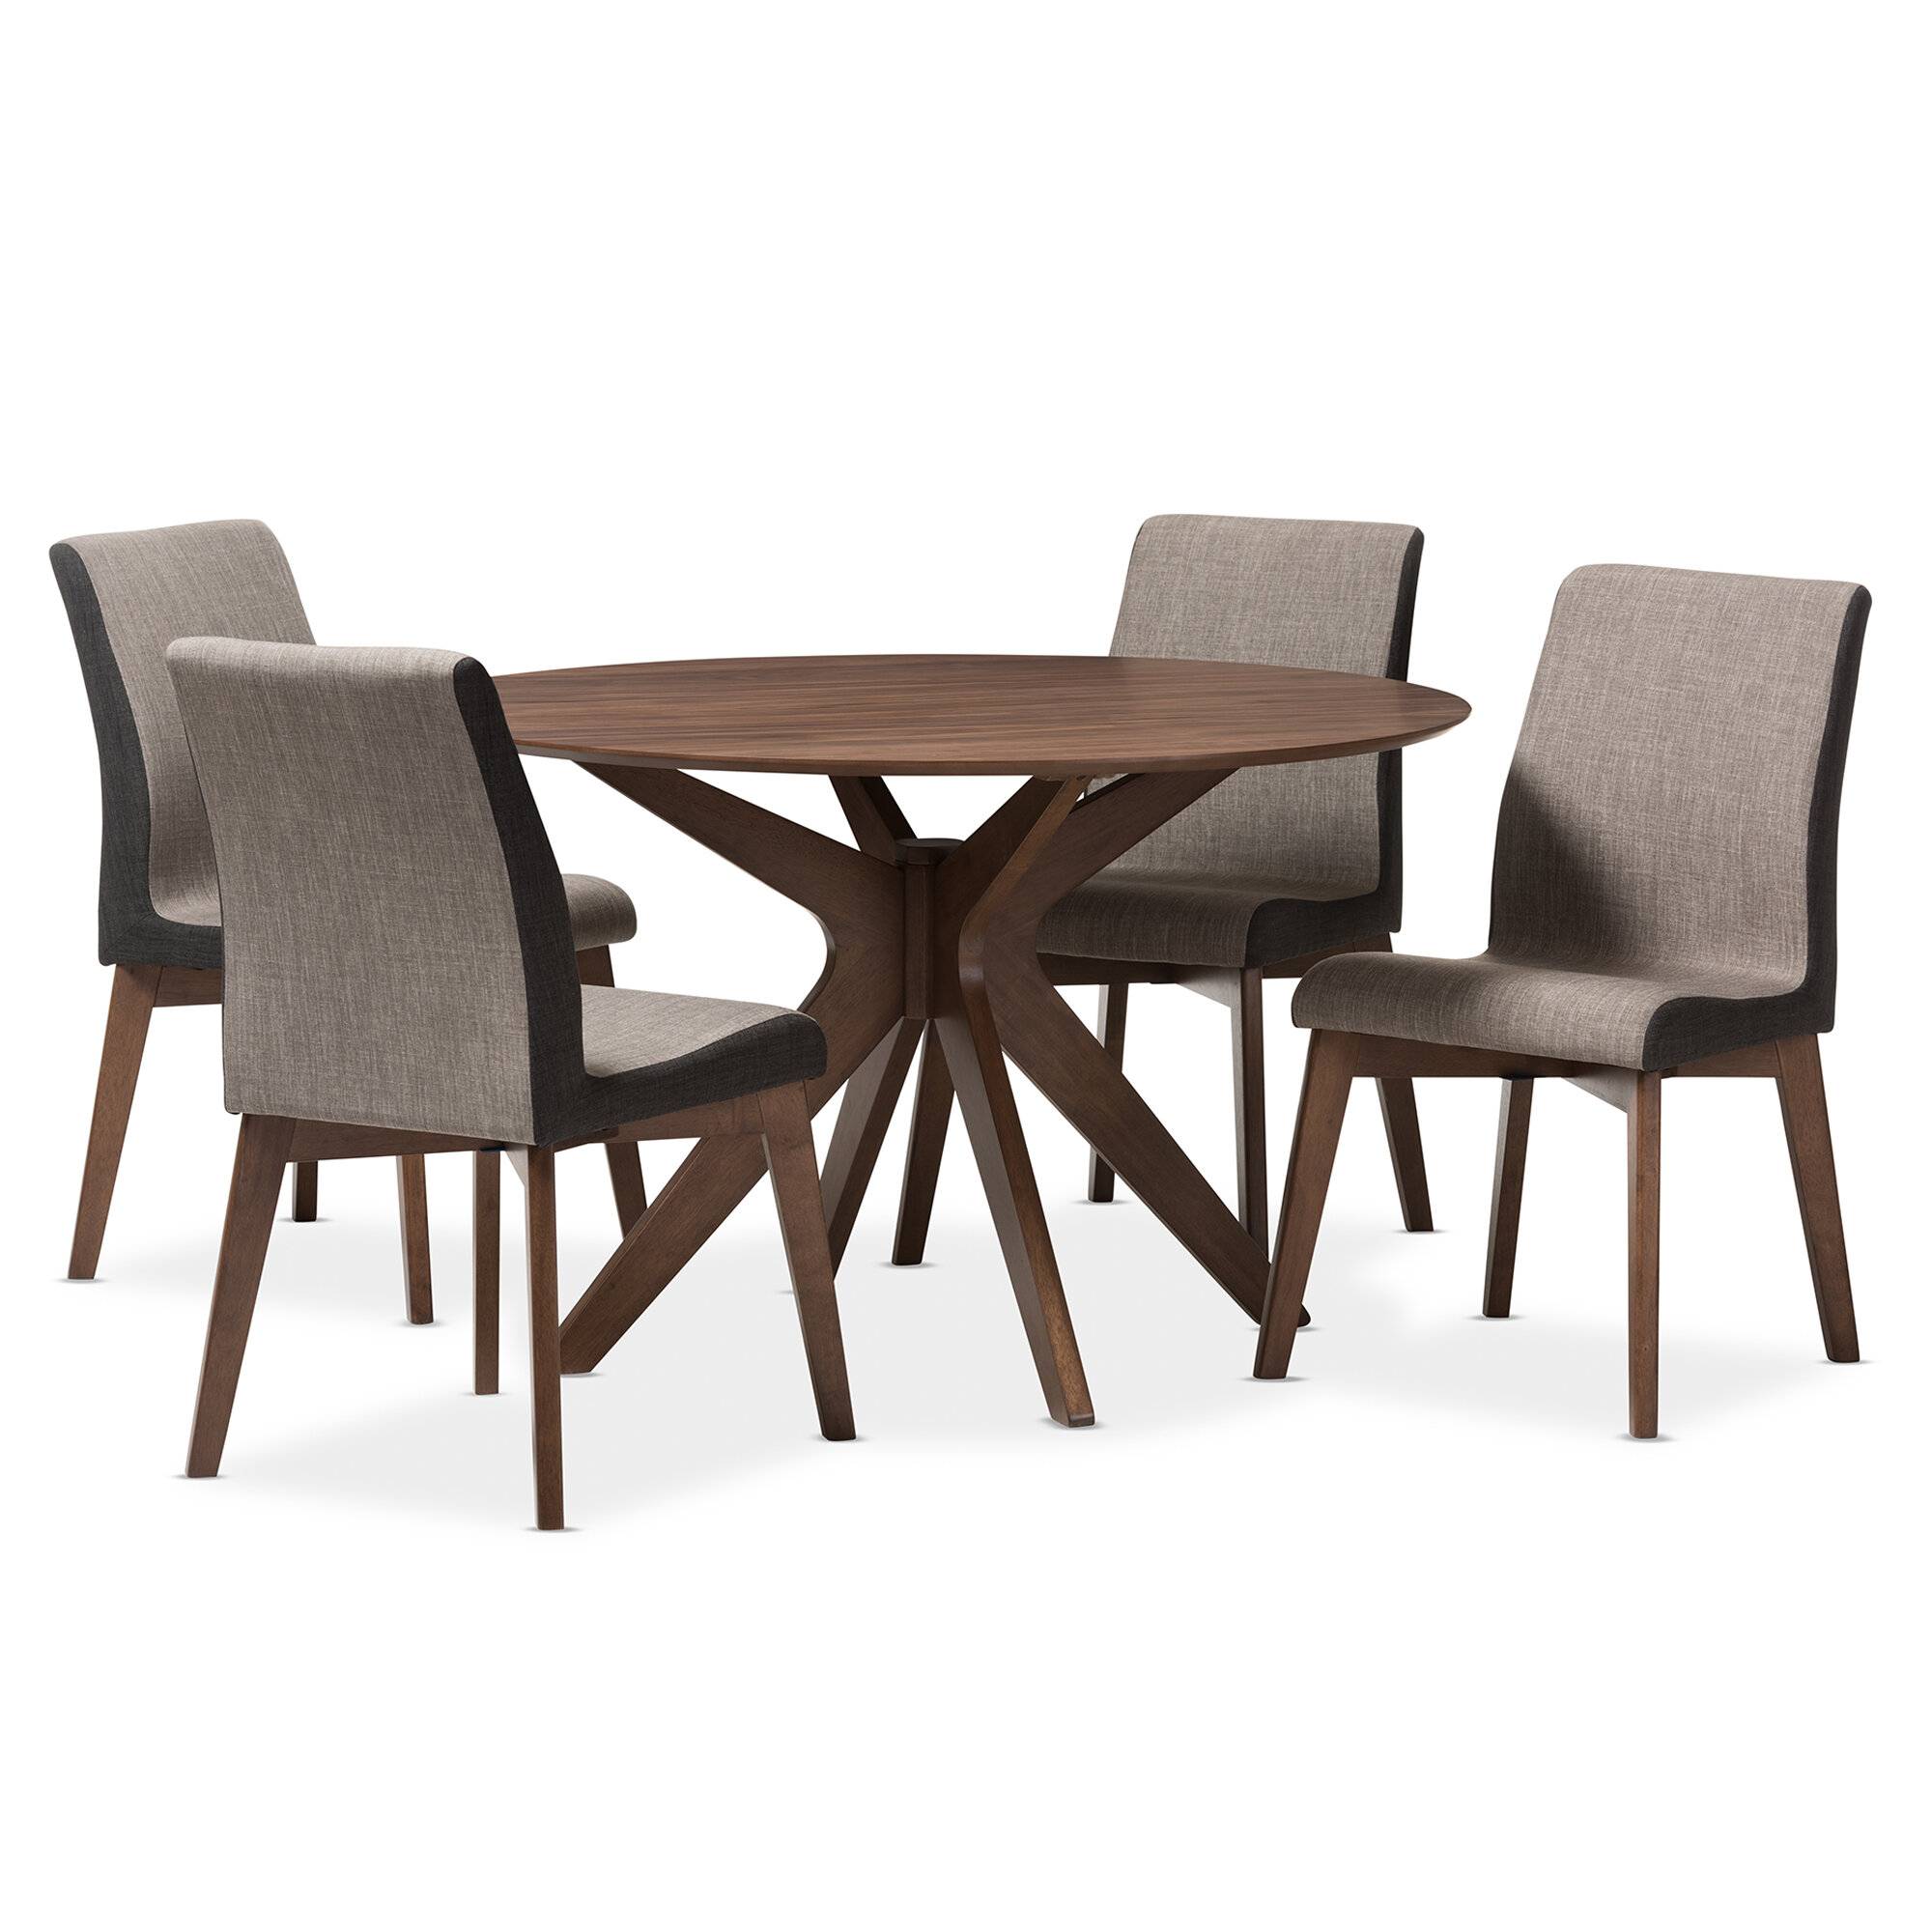 Whole Interiors Kimberly Mid Century Modern Wood Round 5 Piece Dining Set Reviews Wayfair